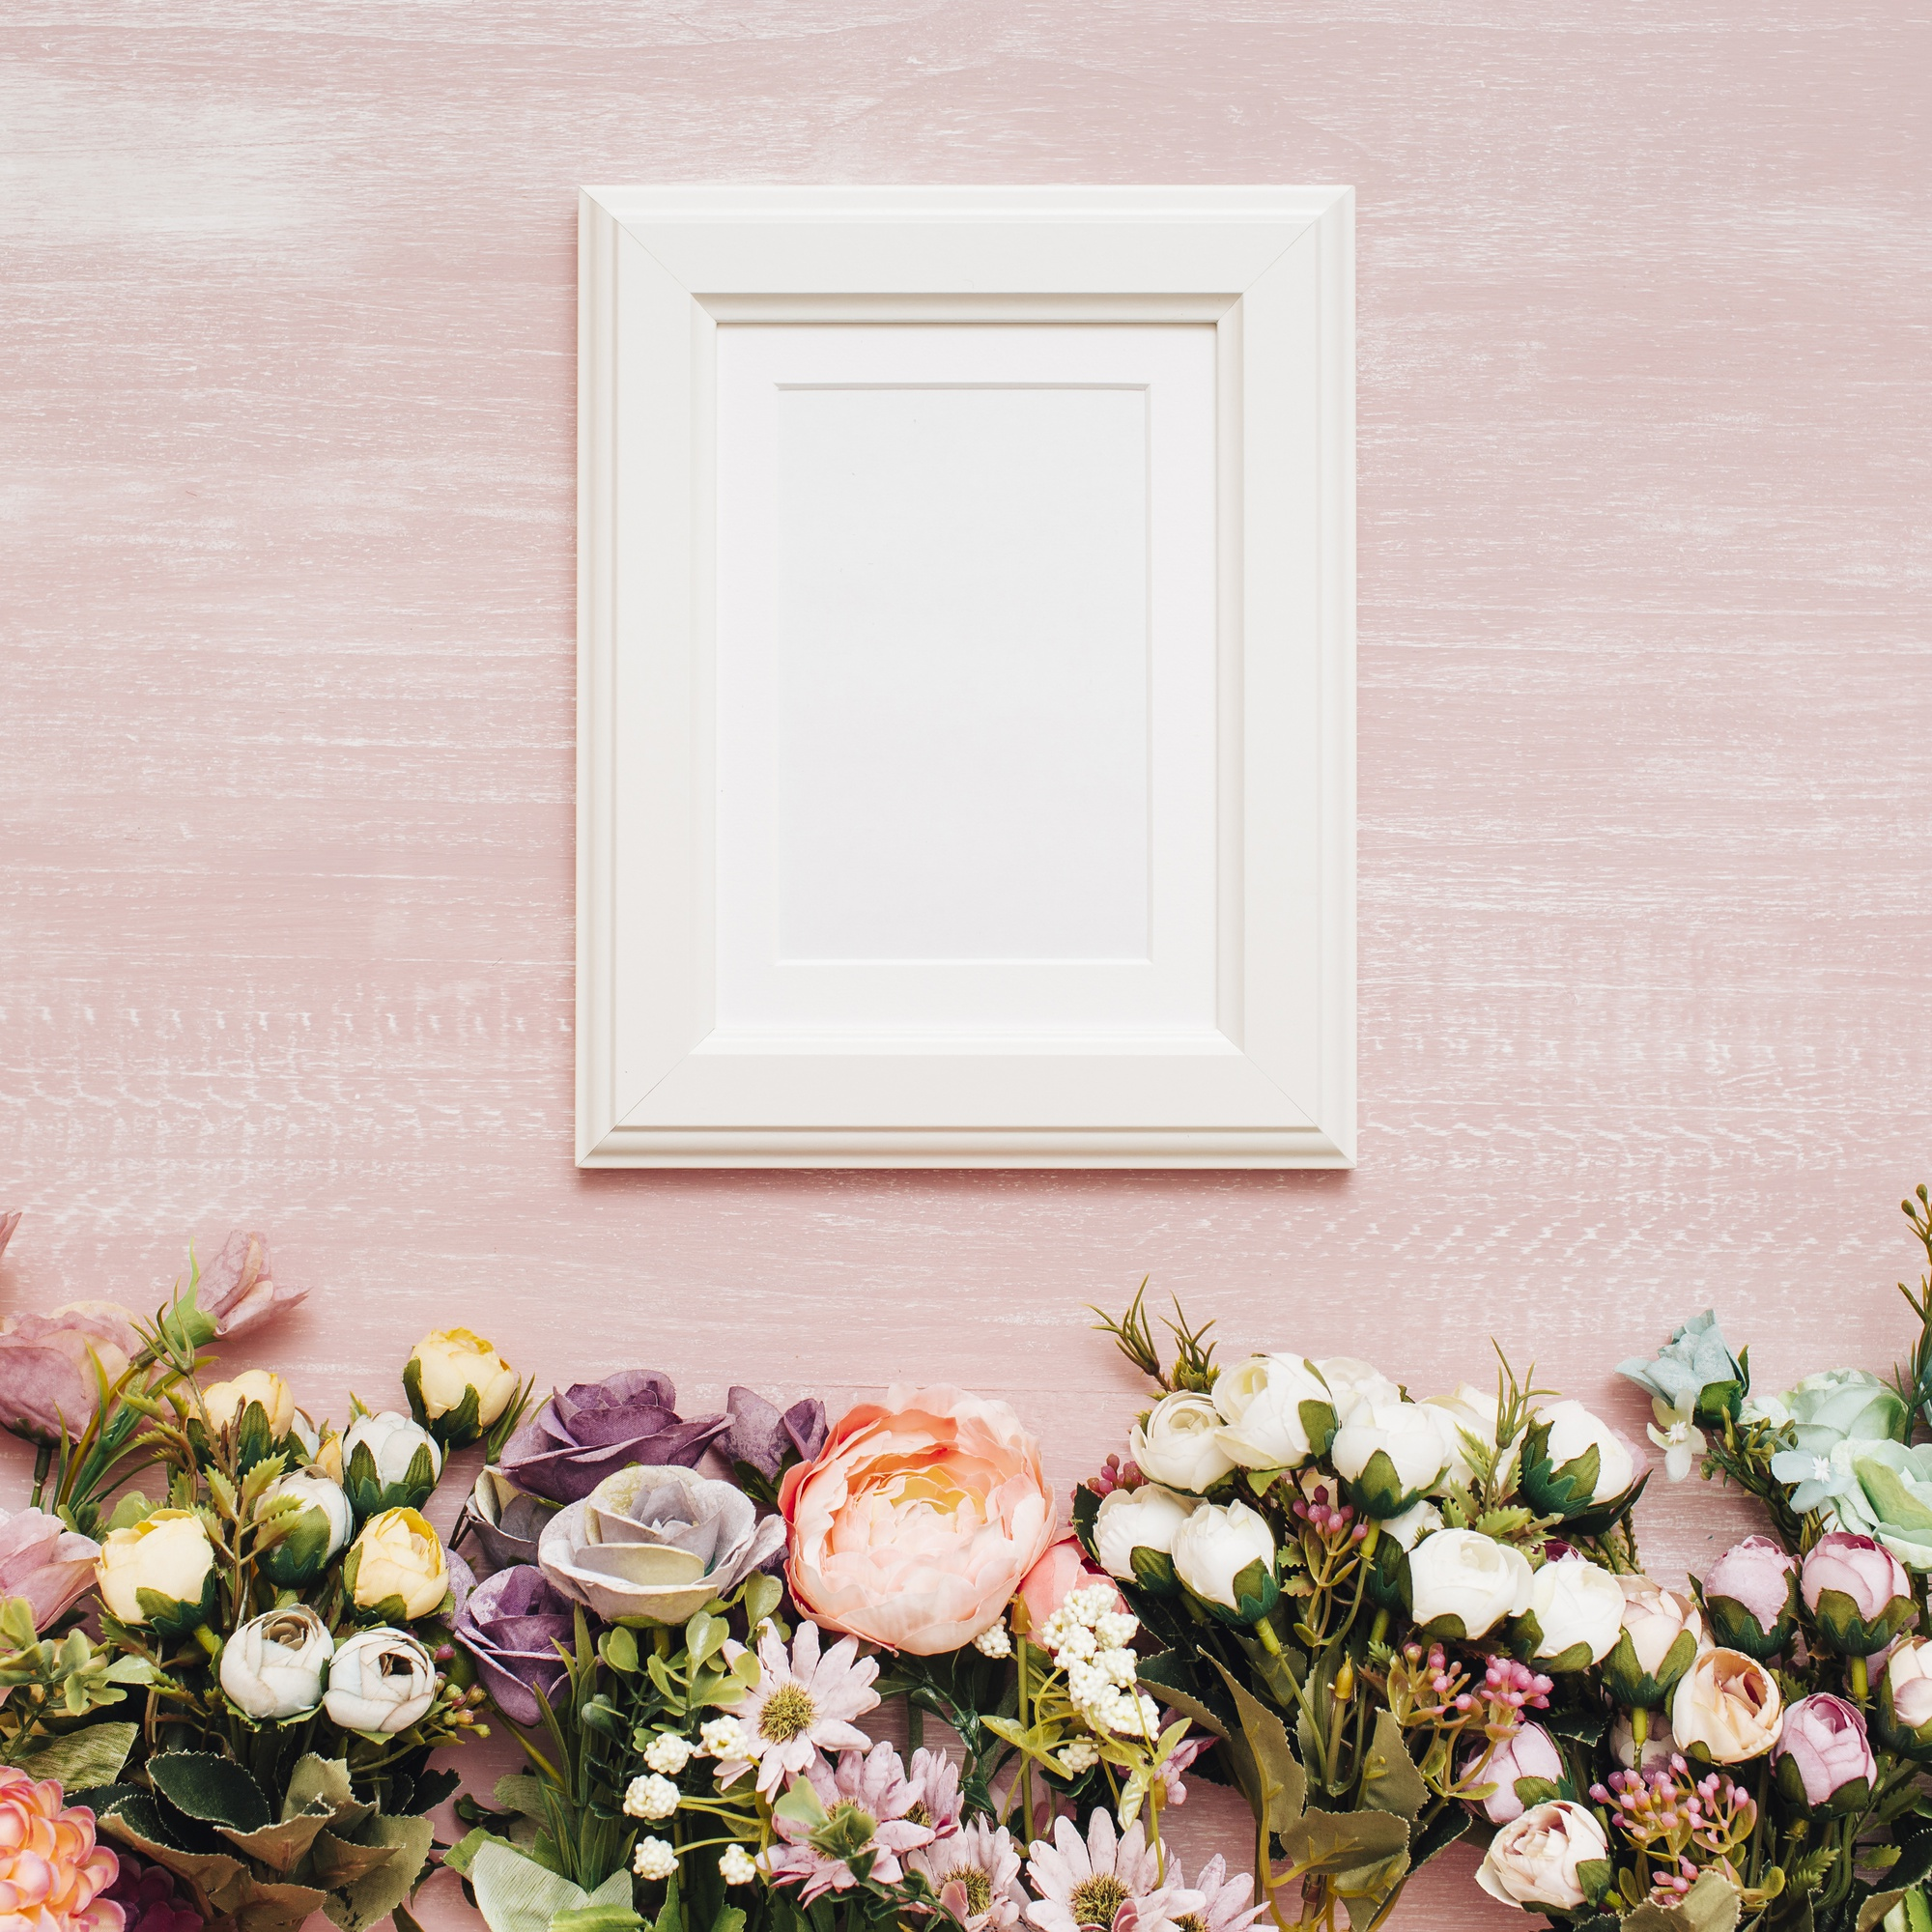 Flowers with white frame